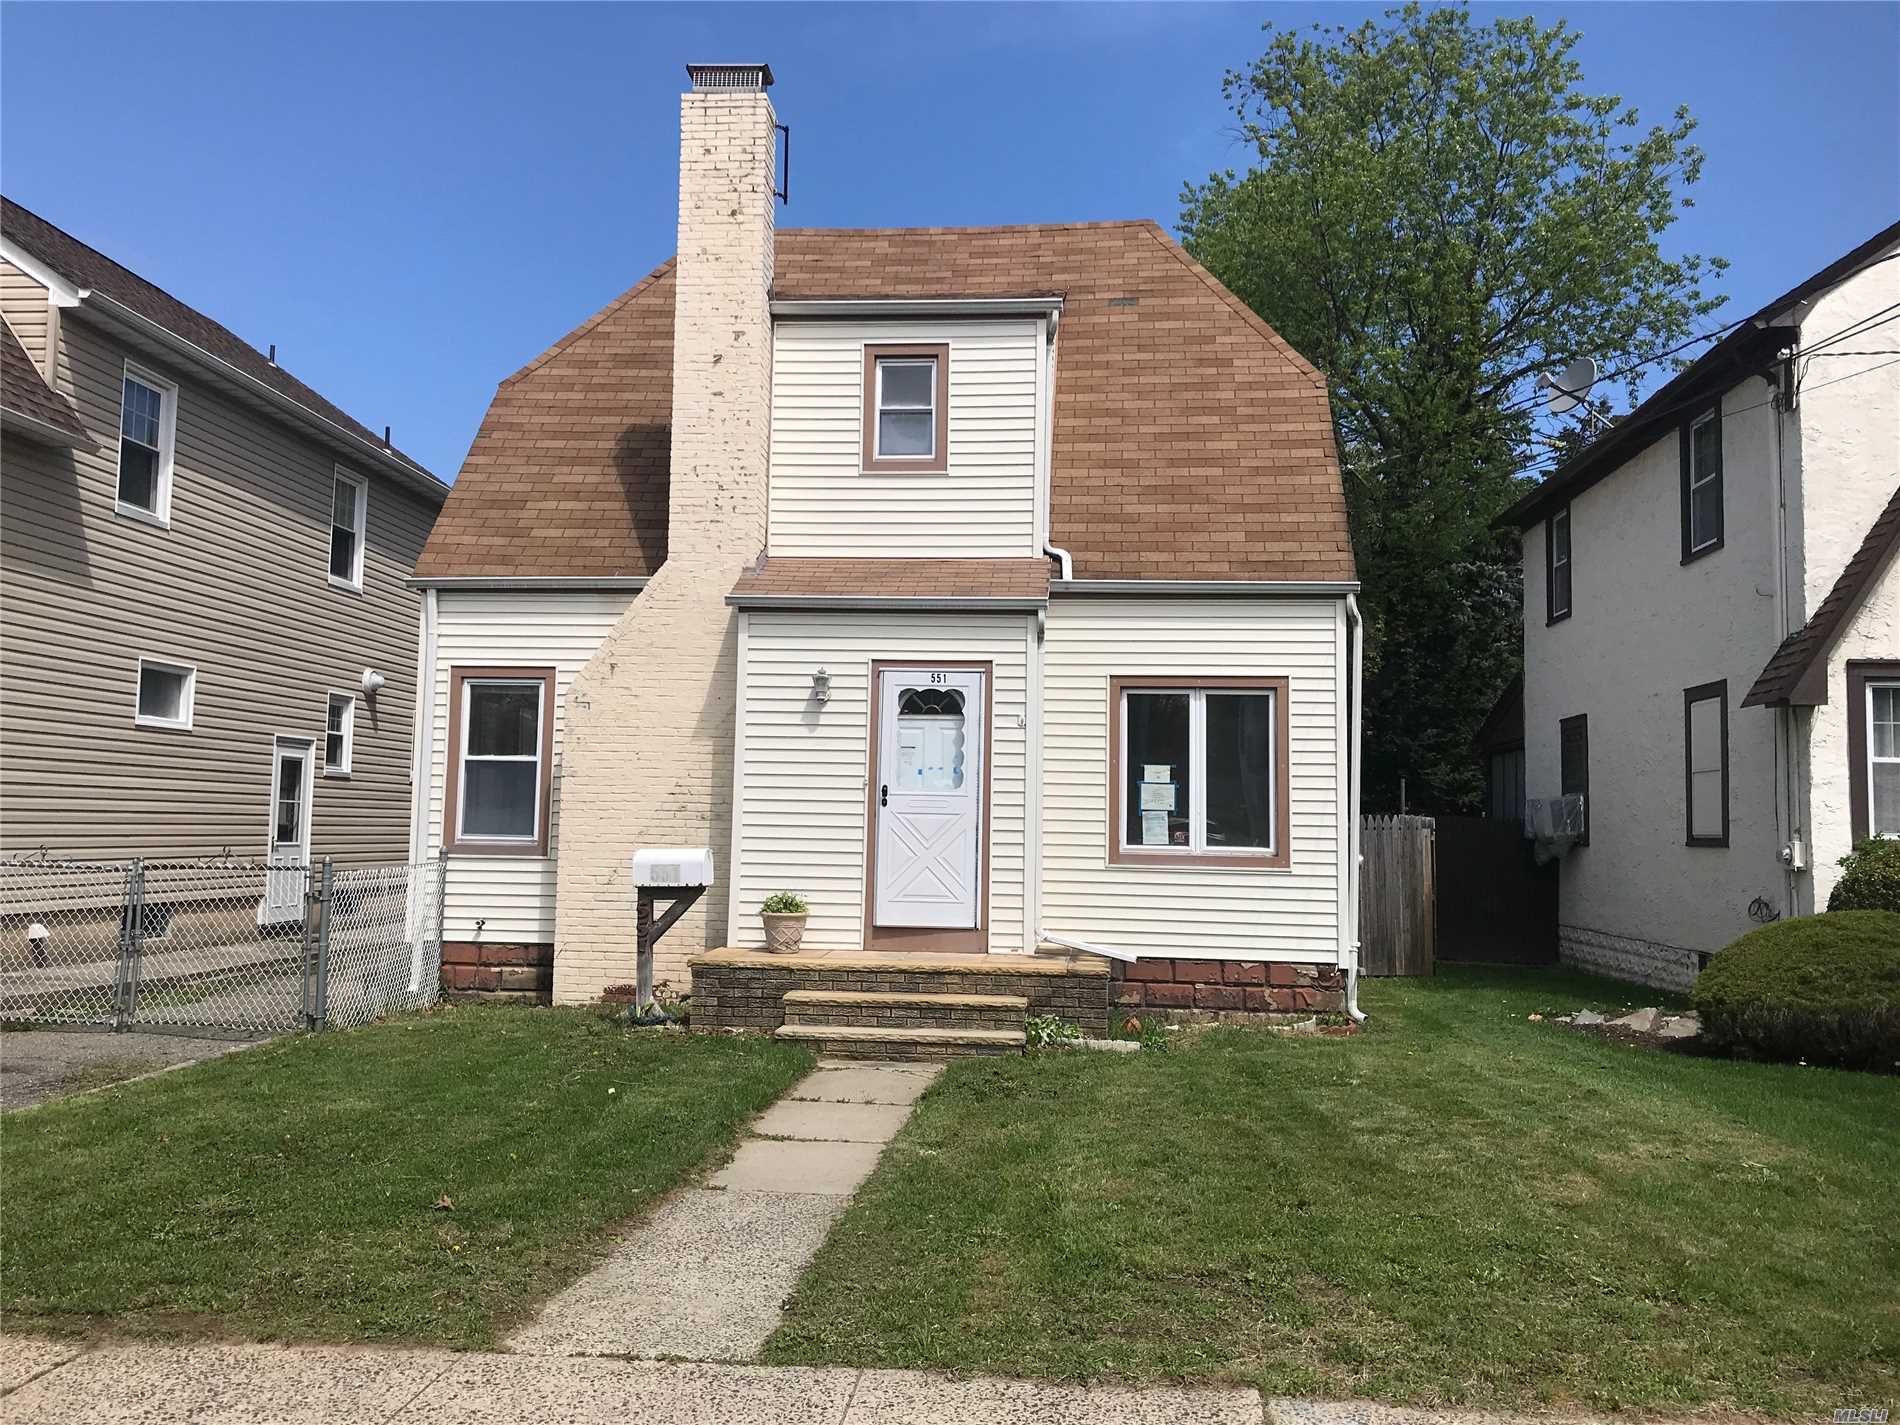 Single Family Home with seven rooms, close to schools, shopping centers and public transportation. Perfect opportunity to won a single family residential home at a very affordable price!